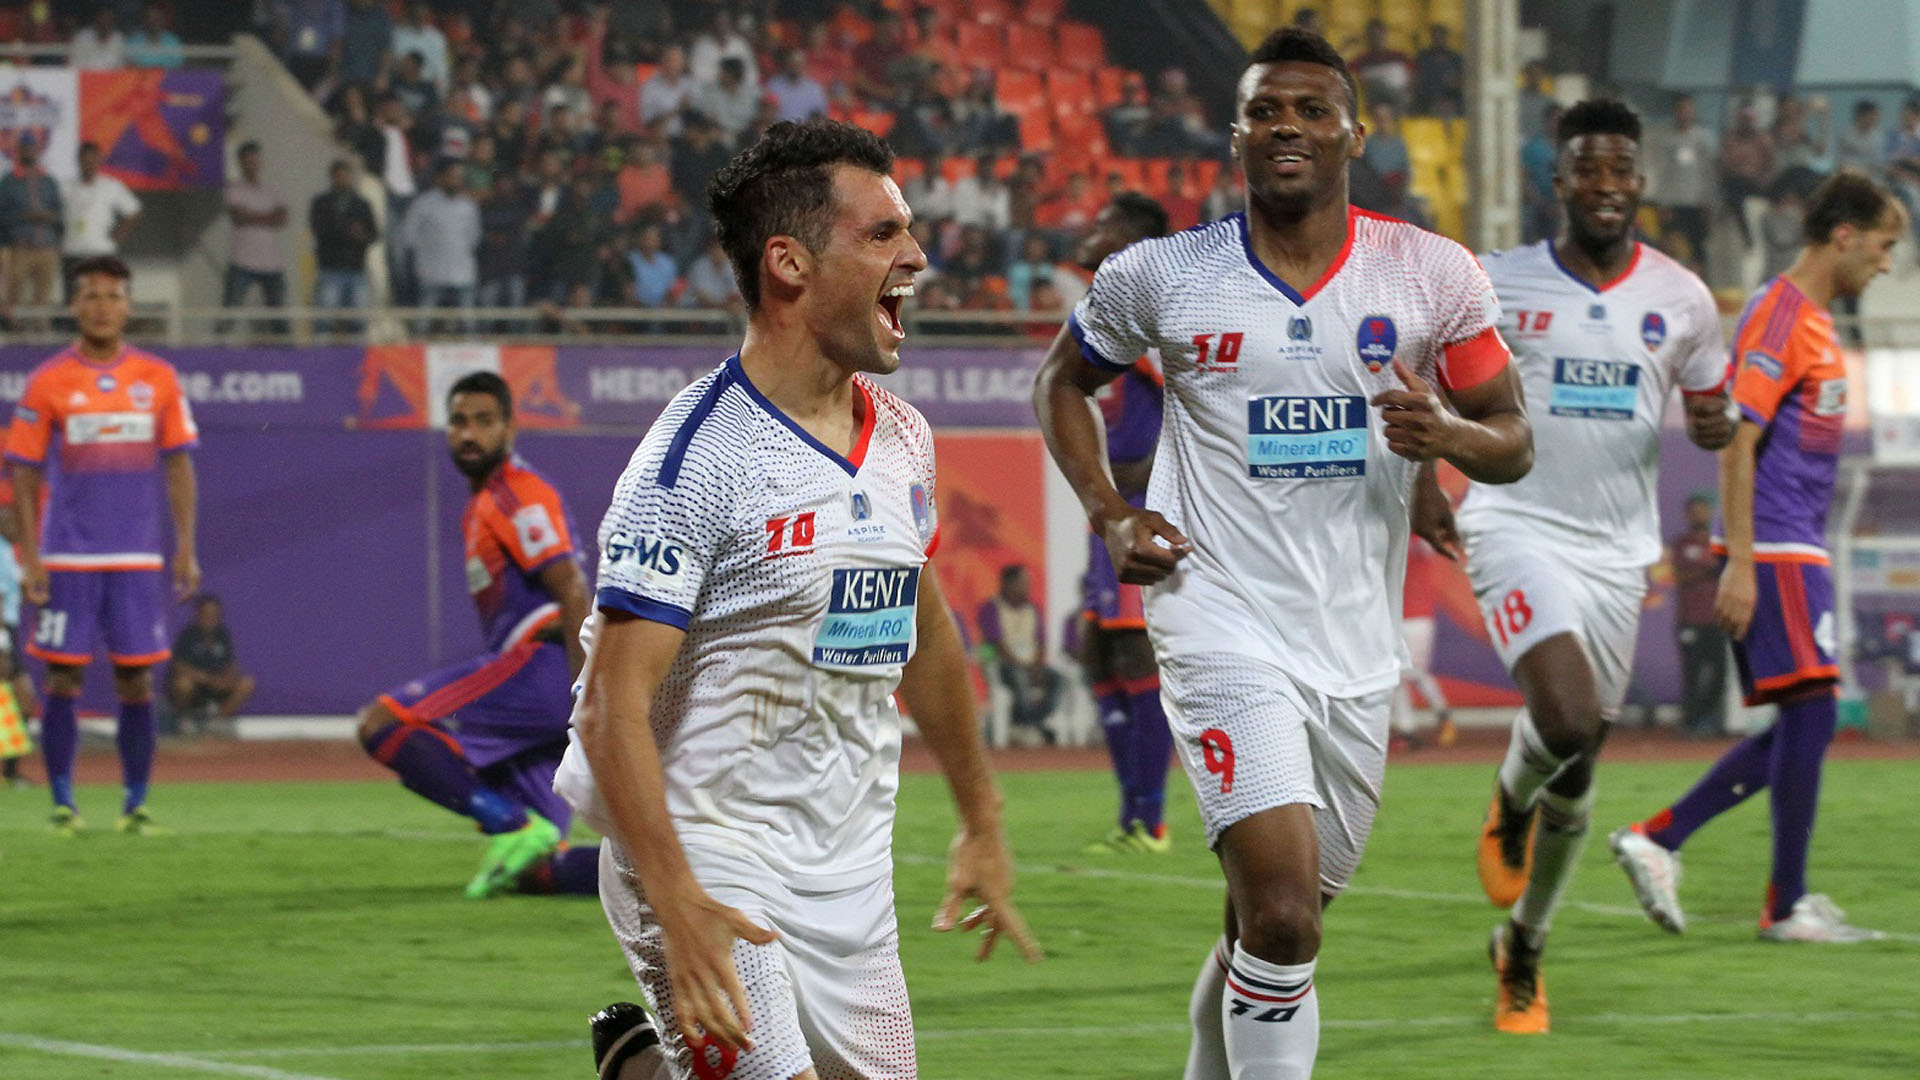 ISL 2017: Delhi Dynamos v NorthEast United - TV channel, stream, kick-off time & match preview